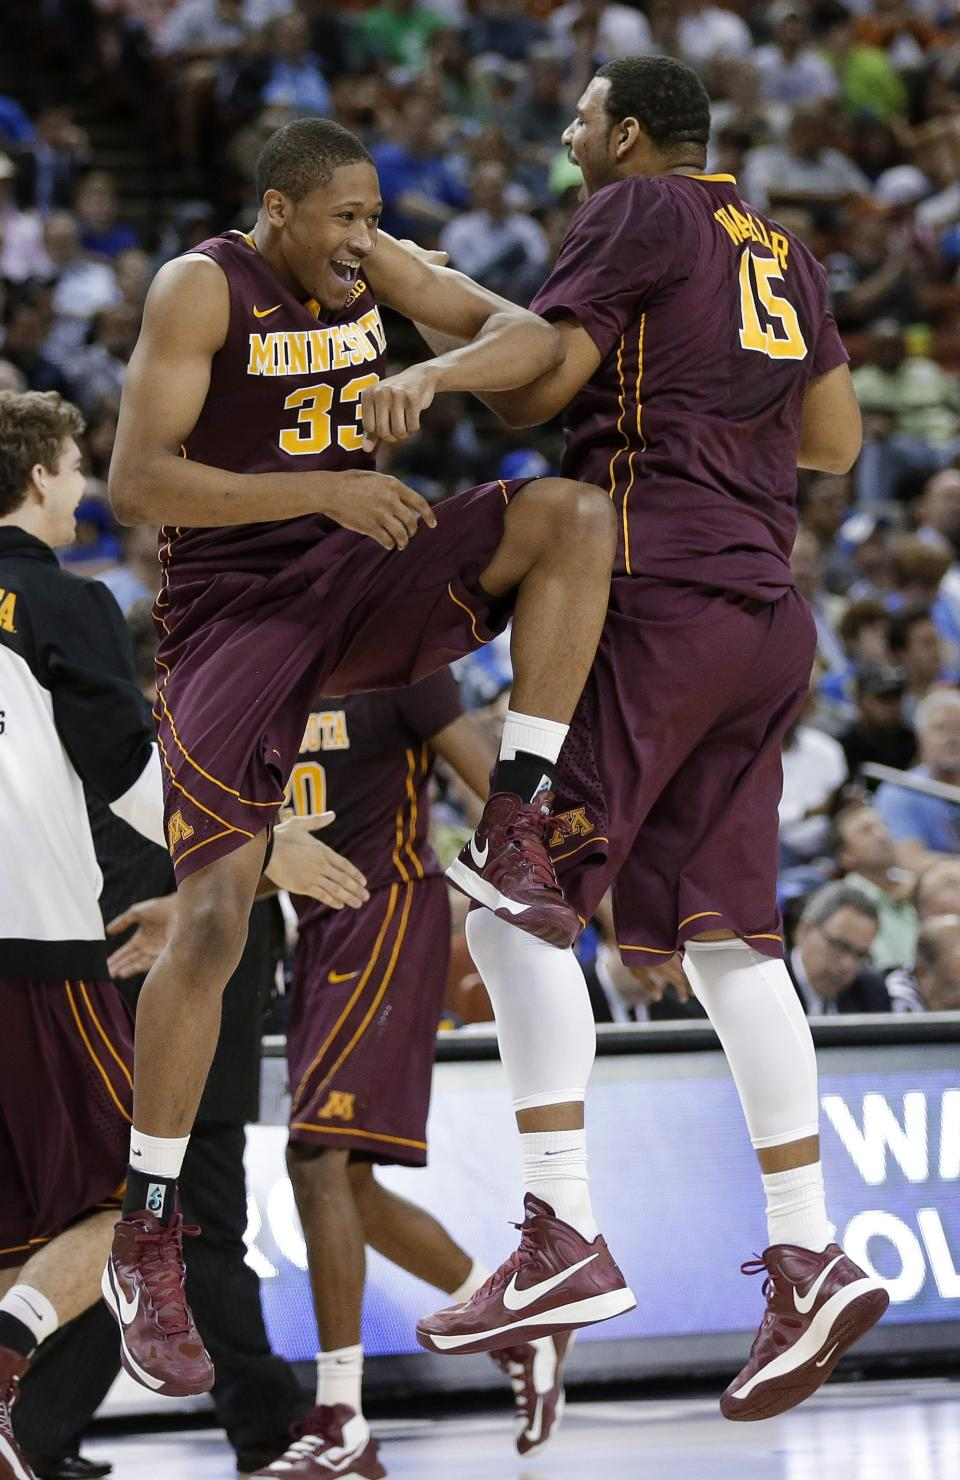 Minnesota's Rodney Williams (33) and Maurice Walker (15) celebrate during a timeout during the first half against UCLA in a second-round game of the NCAA college basketball tournament Friday, March 22, 2013, in Austin, Texas.  (AP Photo/Eric Gay)